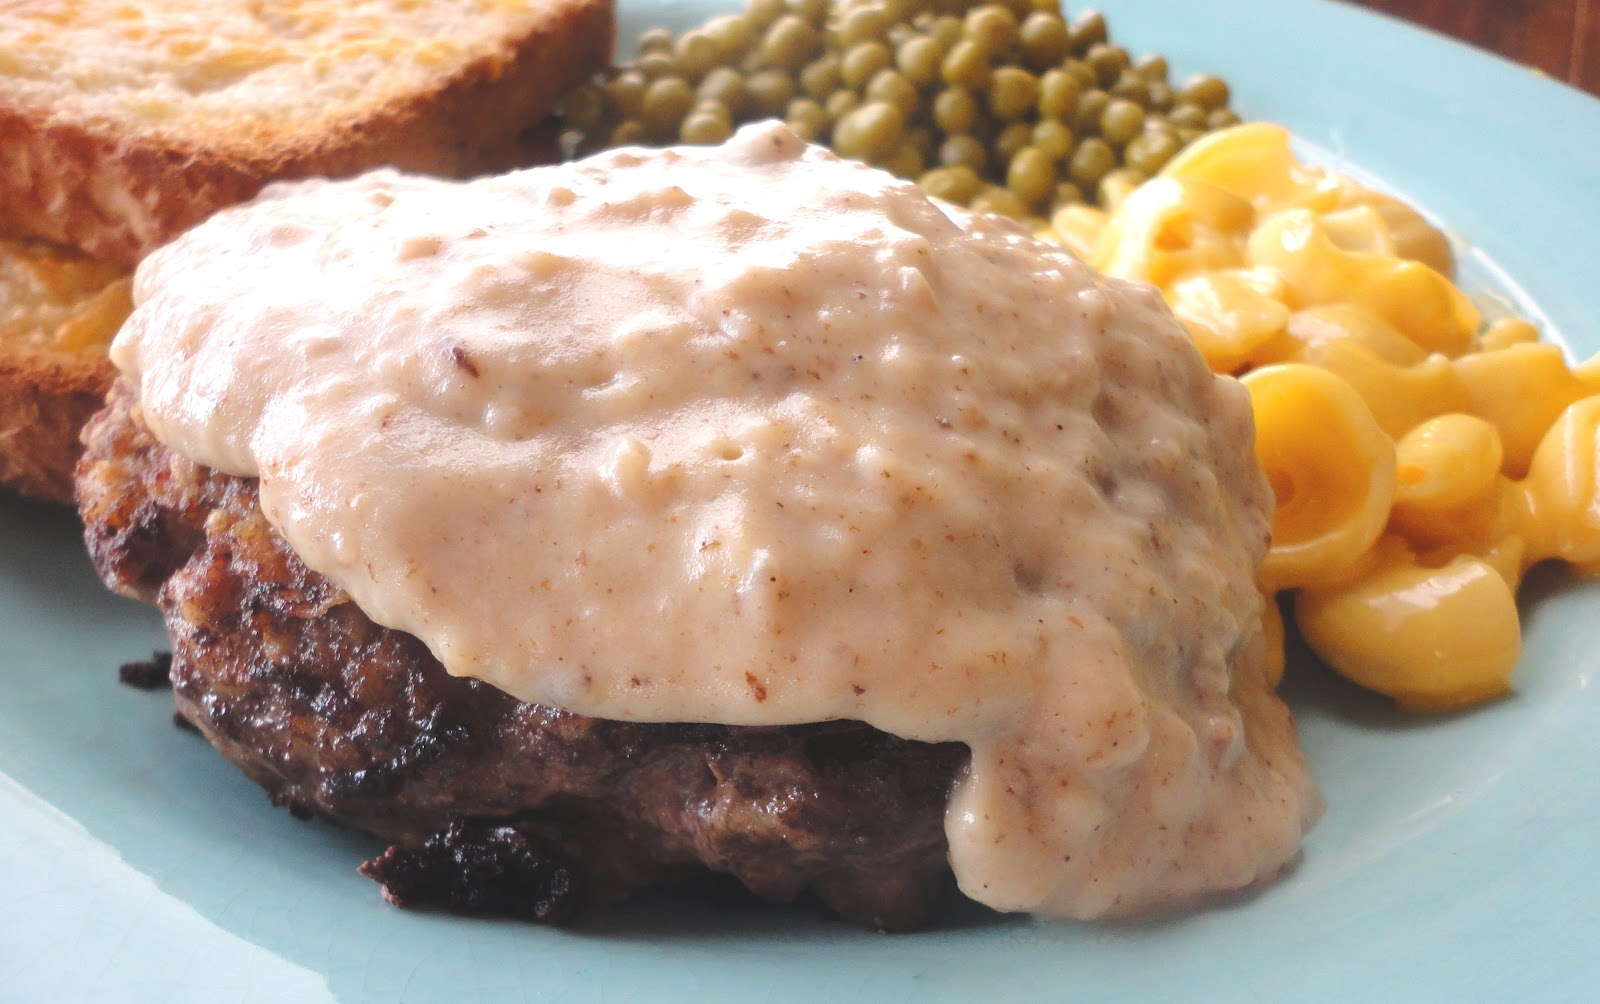 ... www.food.com/recipe/country-fried-hamburger-steaks-with-gravy-338883